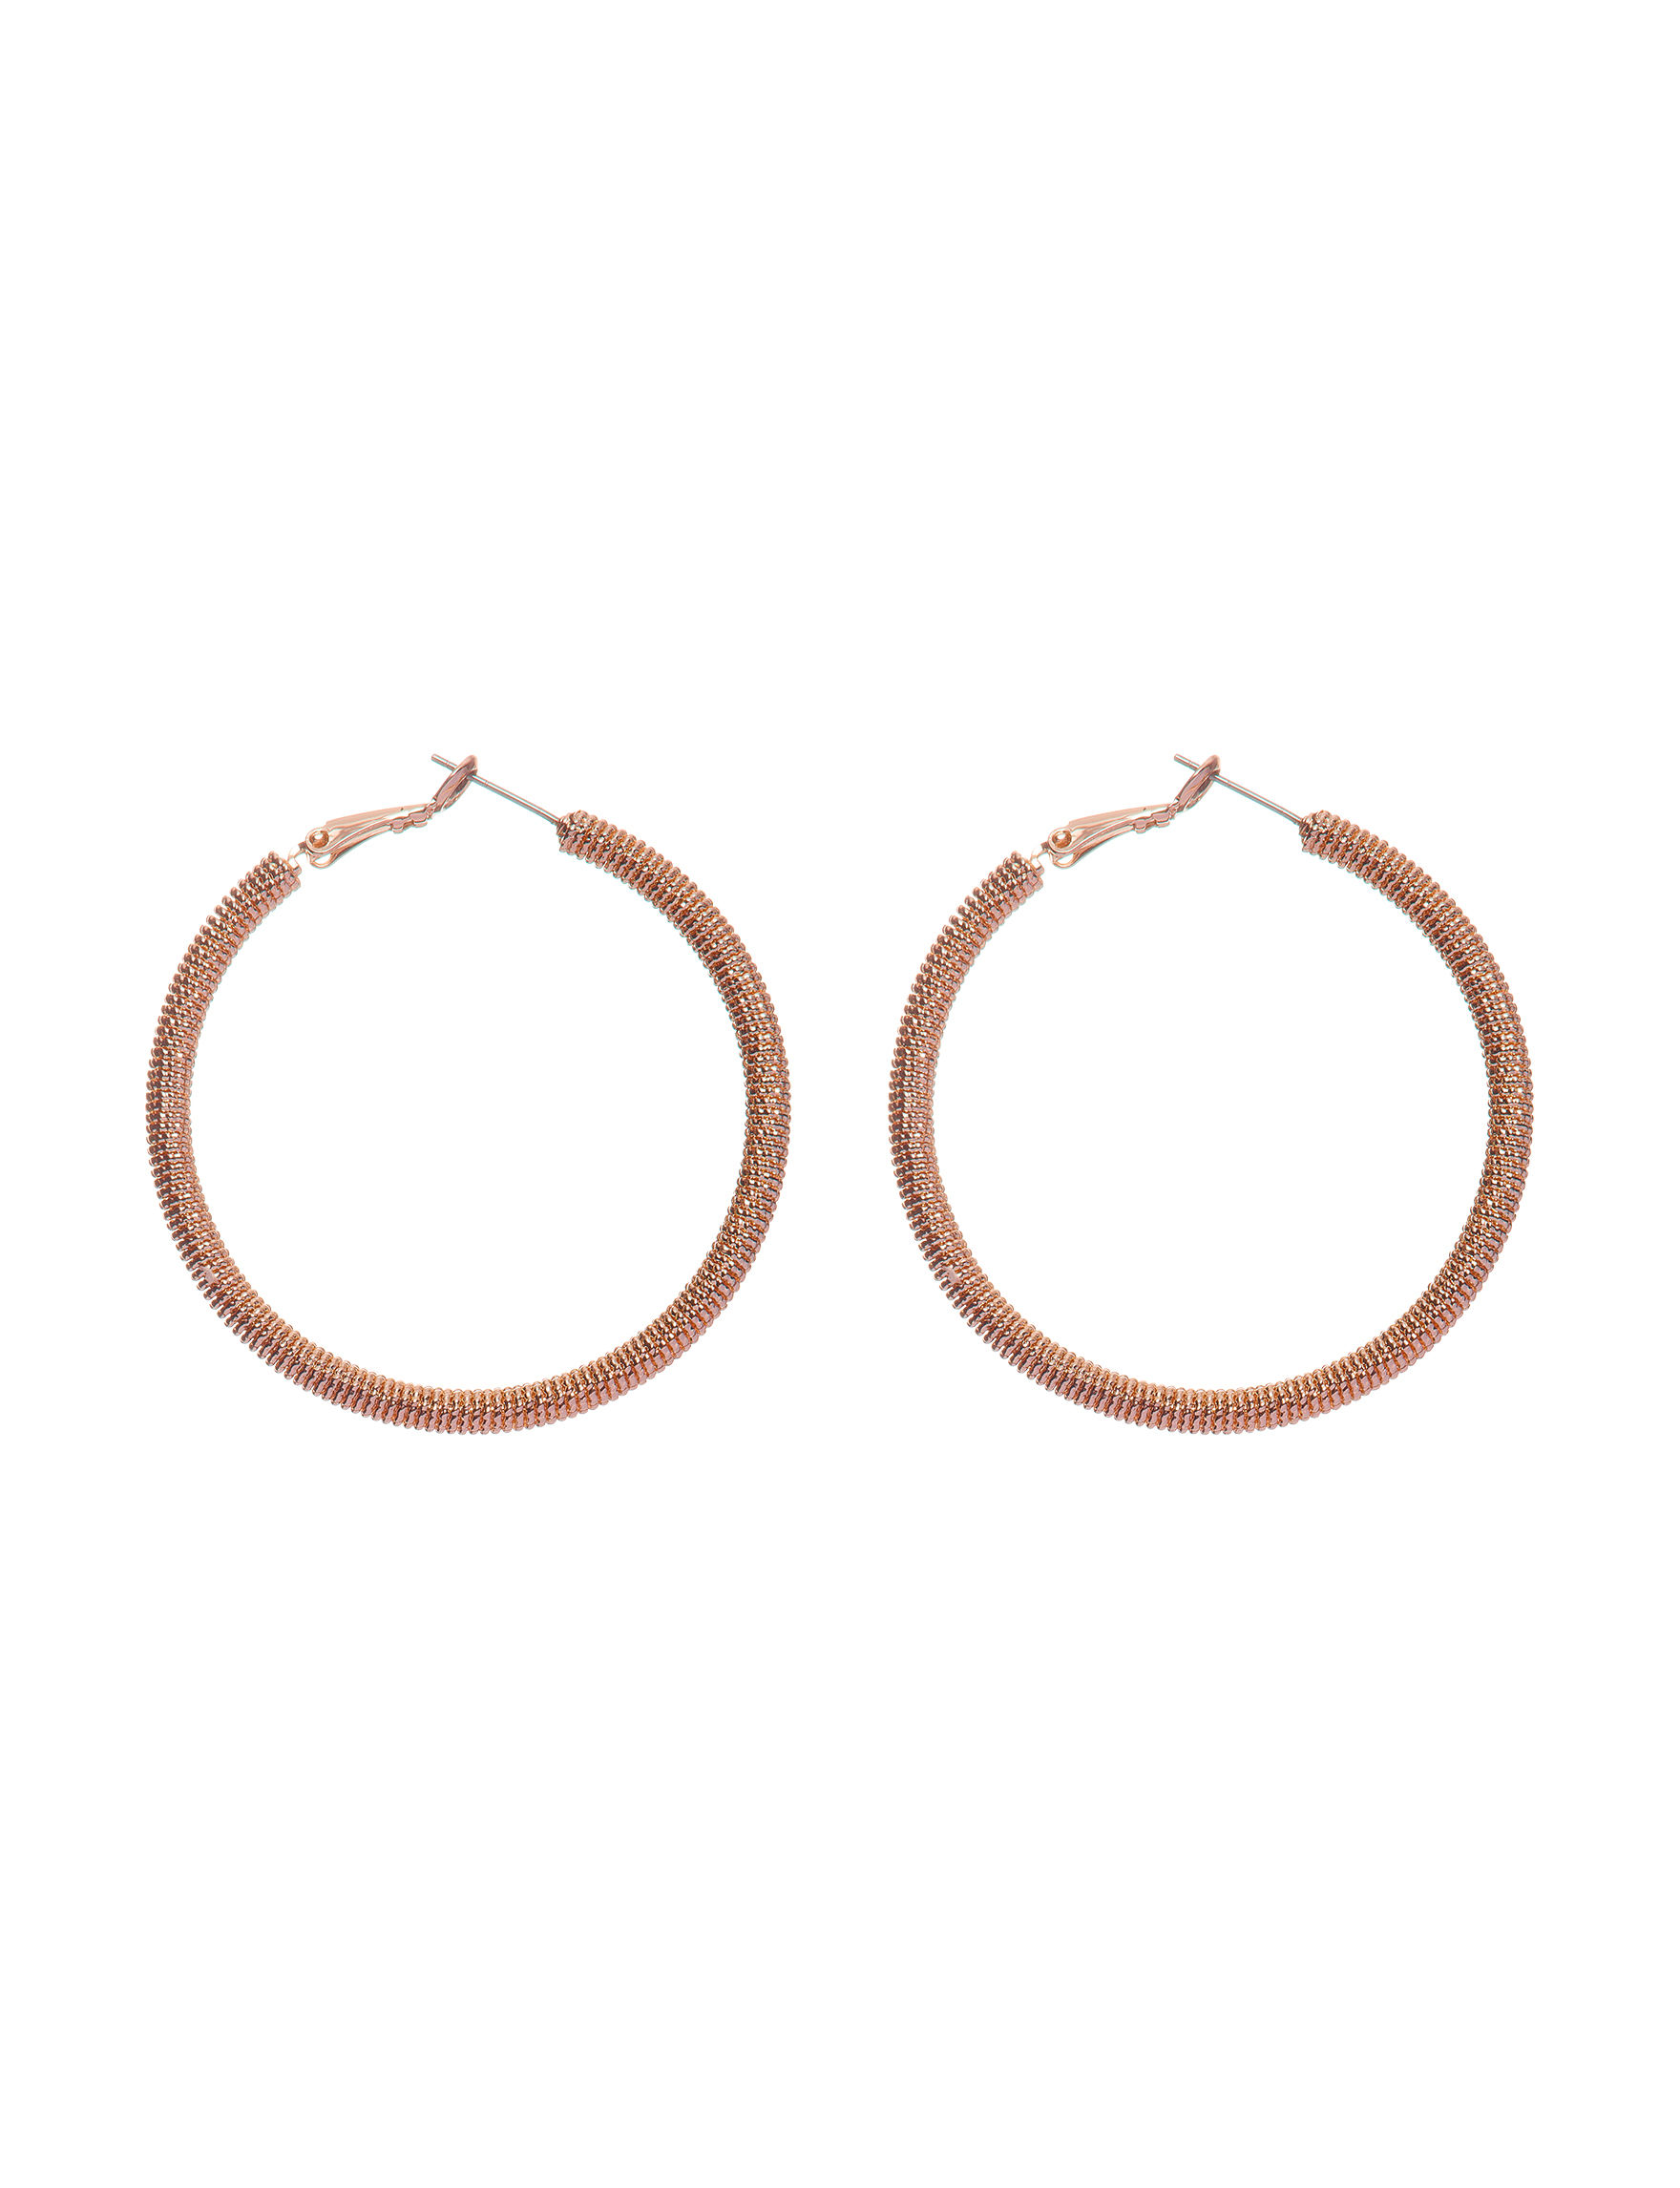 G by Guess Rose Gold Hoops Earrings Fashion Jewelry